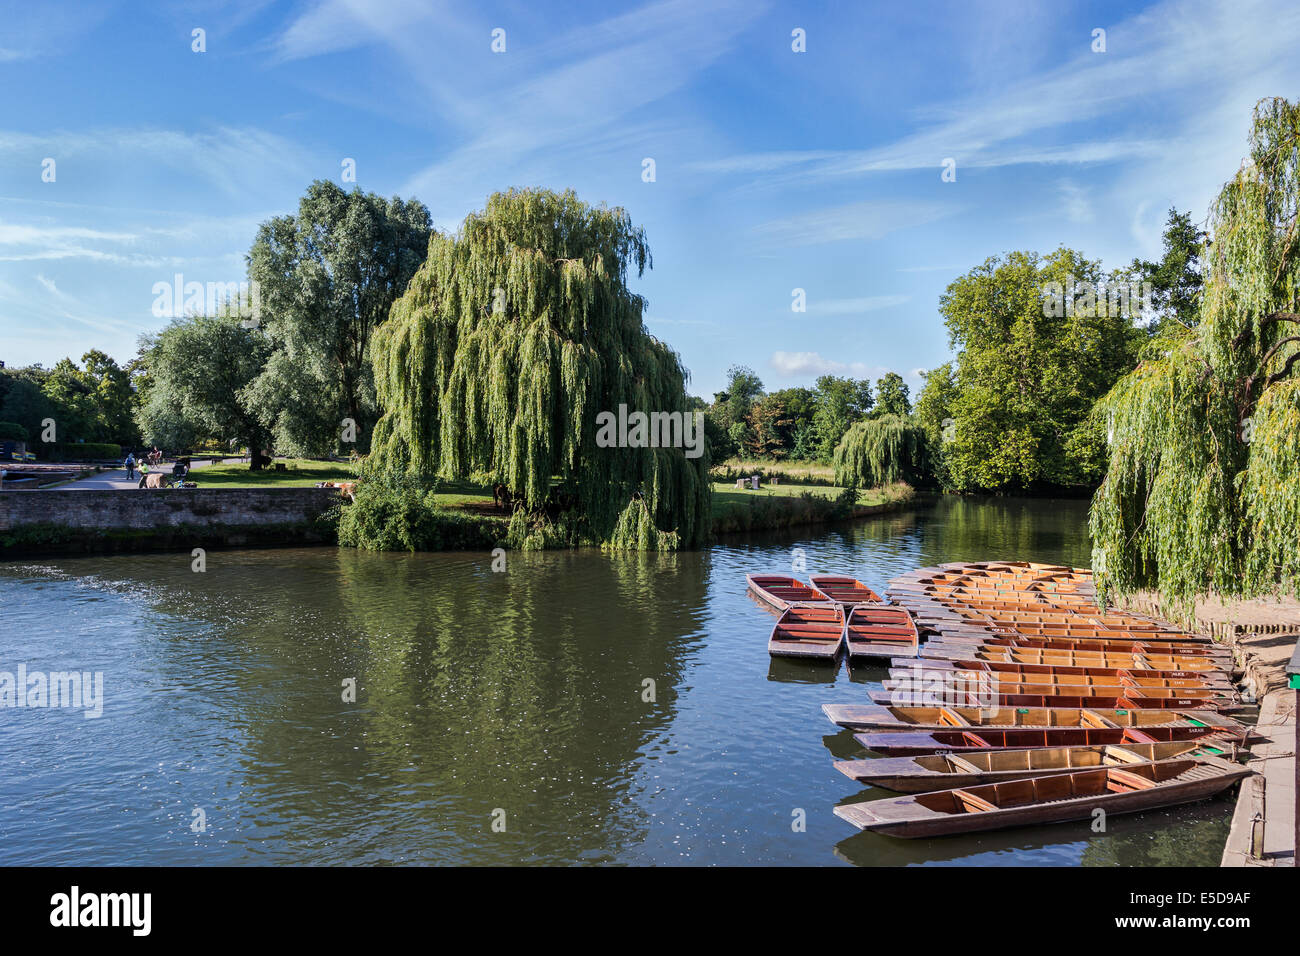 Punts moored on the River Cam, Cambridge, UK - Stock Image